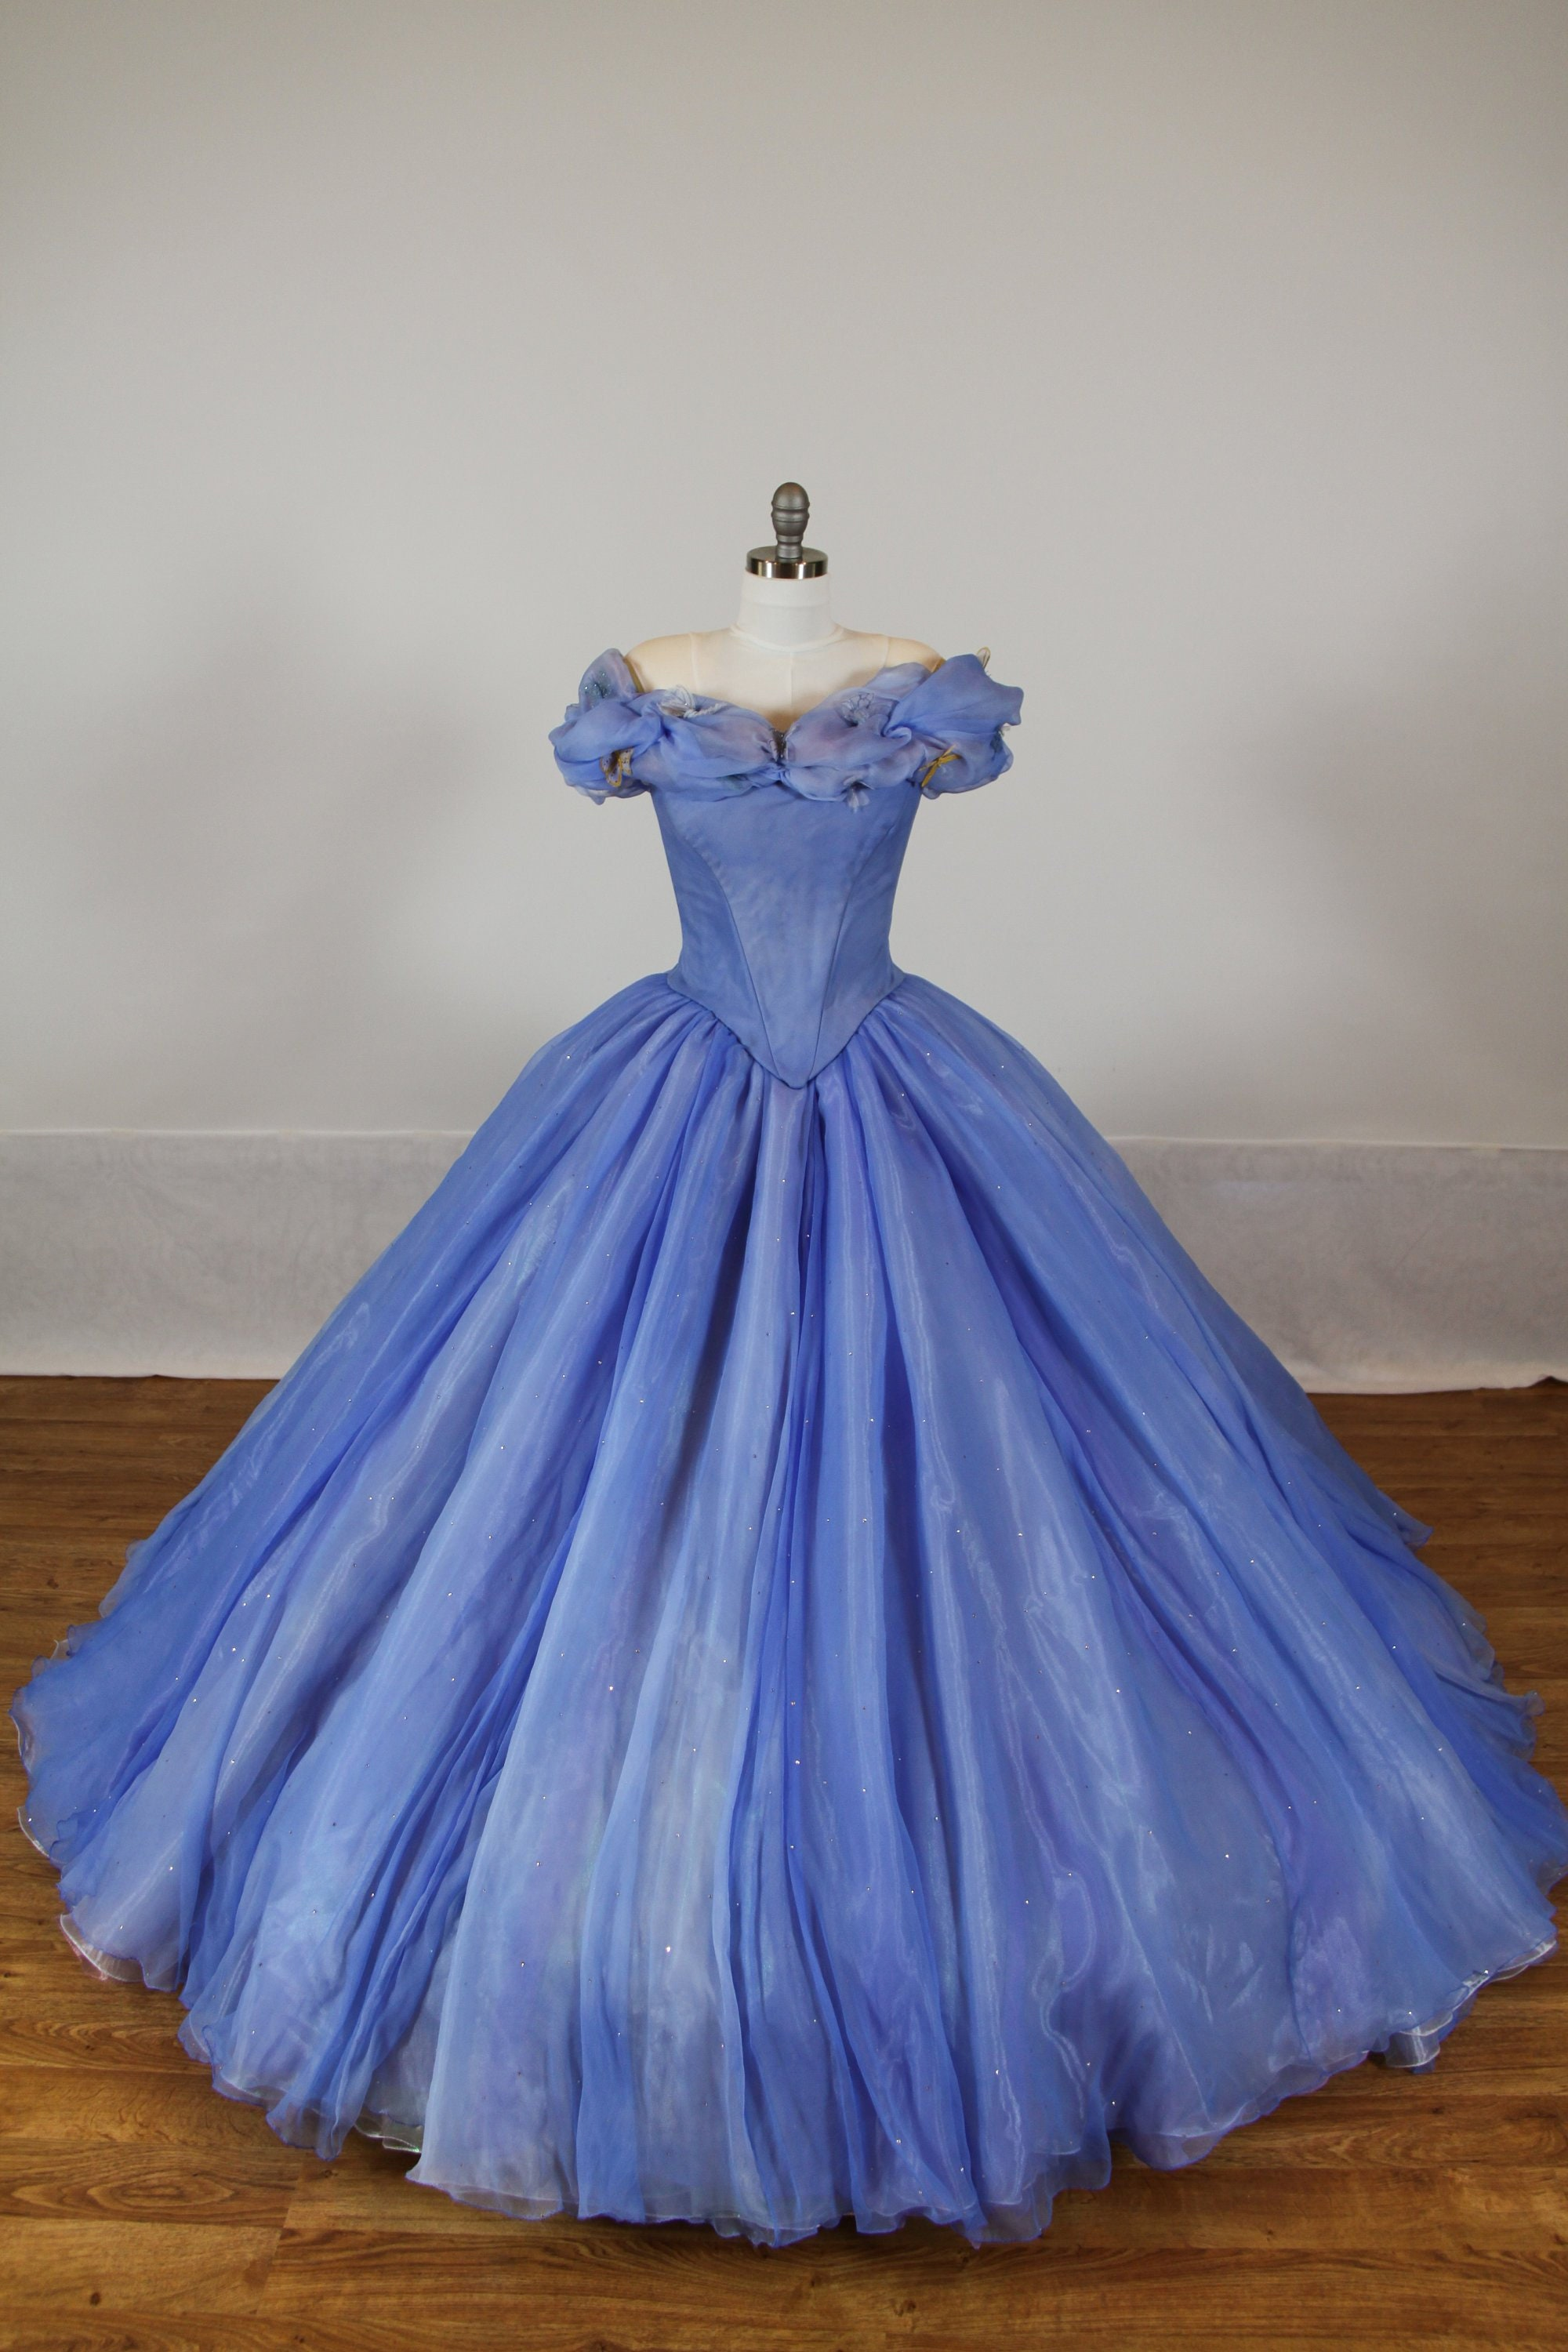 a3aa5c9d438a9 UPGRADED - Cinderella Disney Dress - Costume / Cosplay Gown - 2015 Live  Action Movie - Women - Custom Size